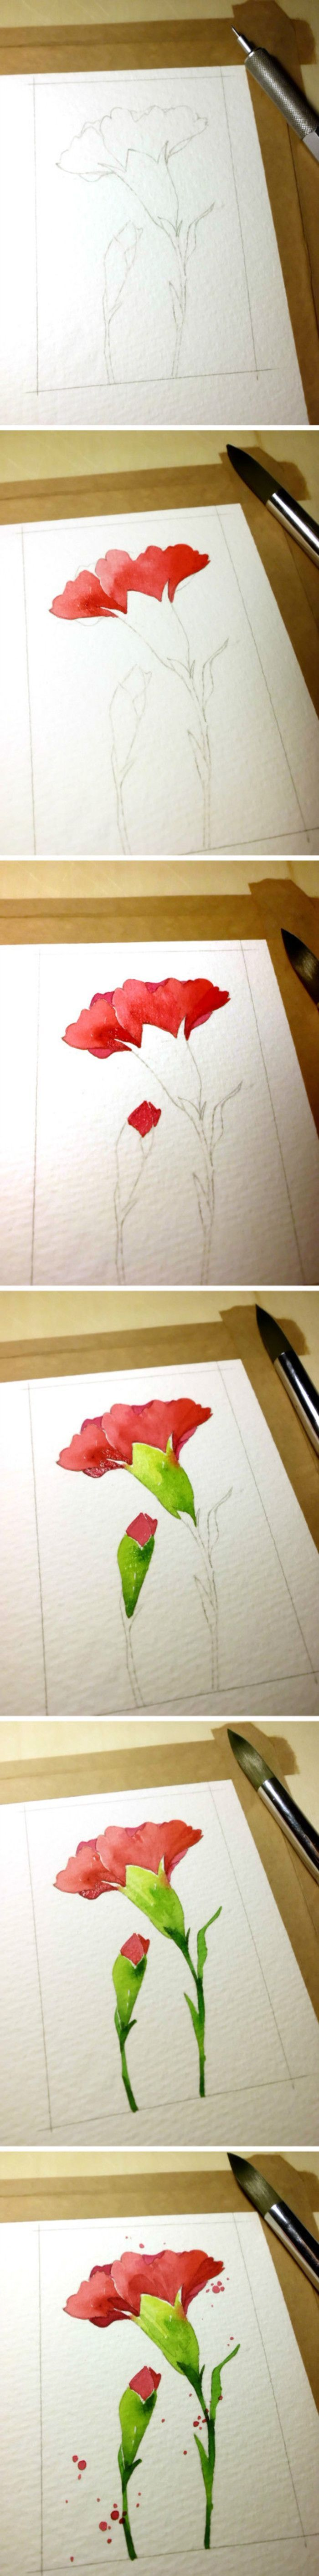 [Drawing tutorial] cockscomb (Hong Sahua) painting - illustration homes - homes of original watercolor illustration illustrator - illustration of white homes [fast-paced world - Fourth Series] -3- illustration homes, cure flora small fresh